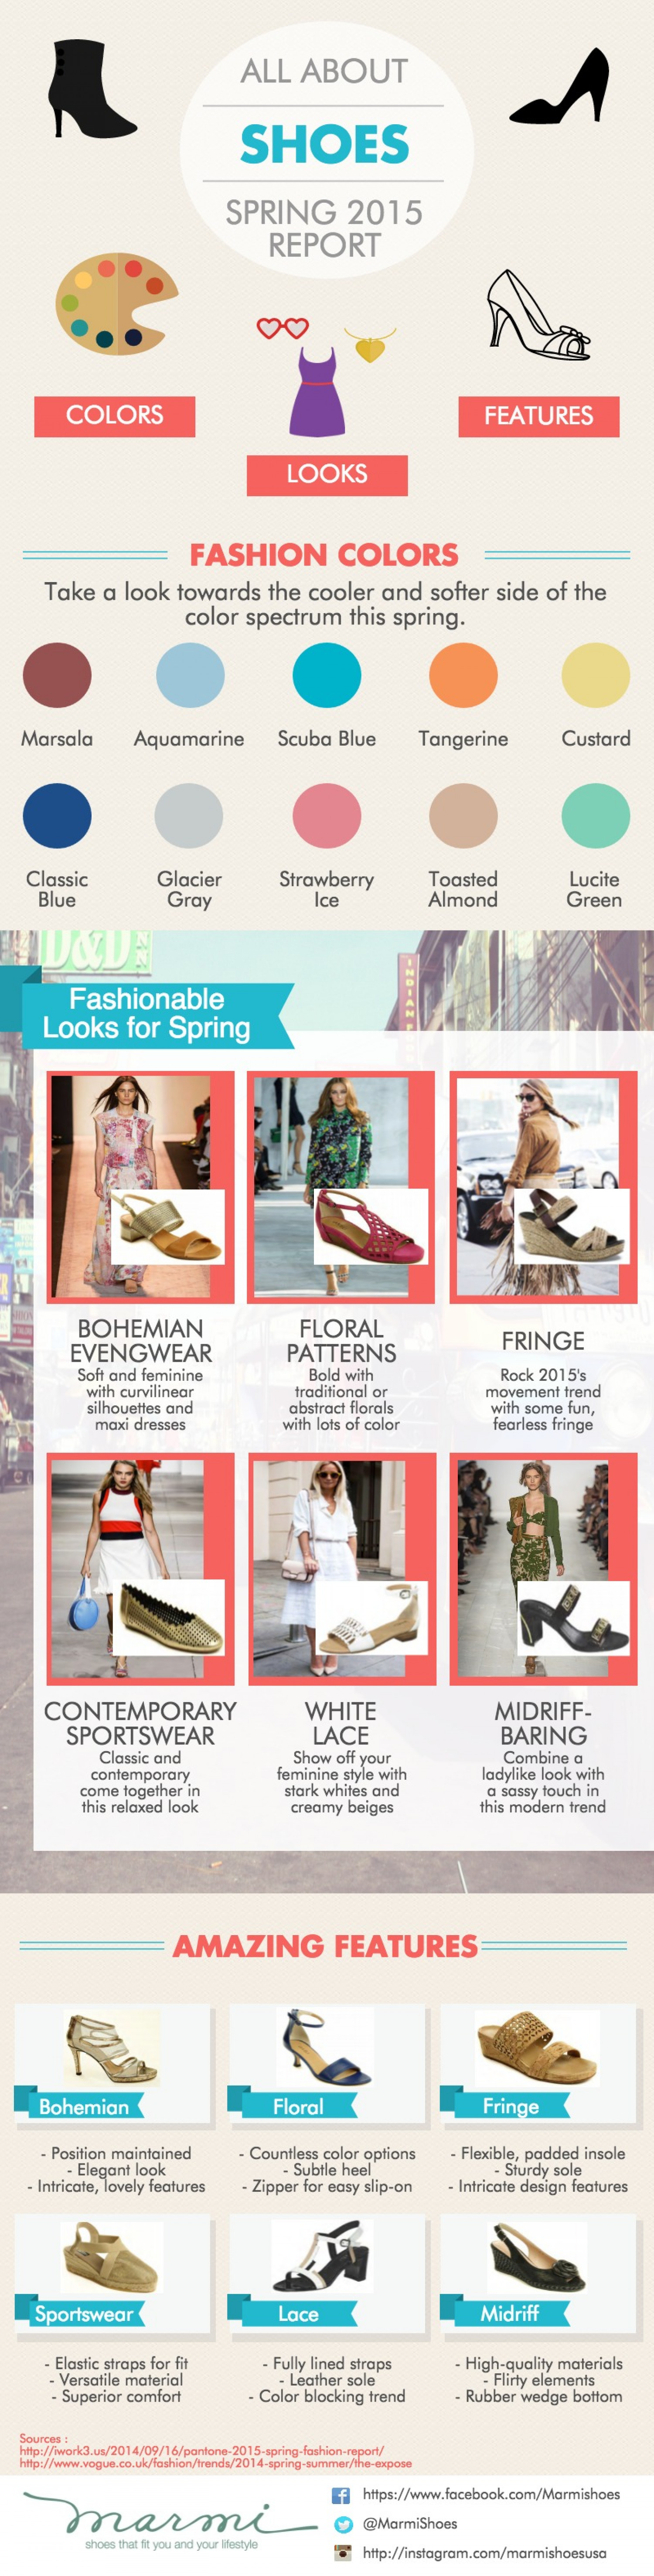 Spring Shoe Trends Infographic